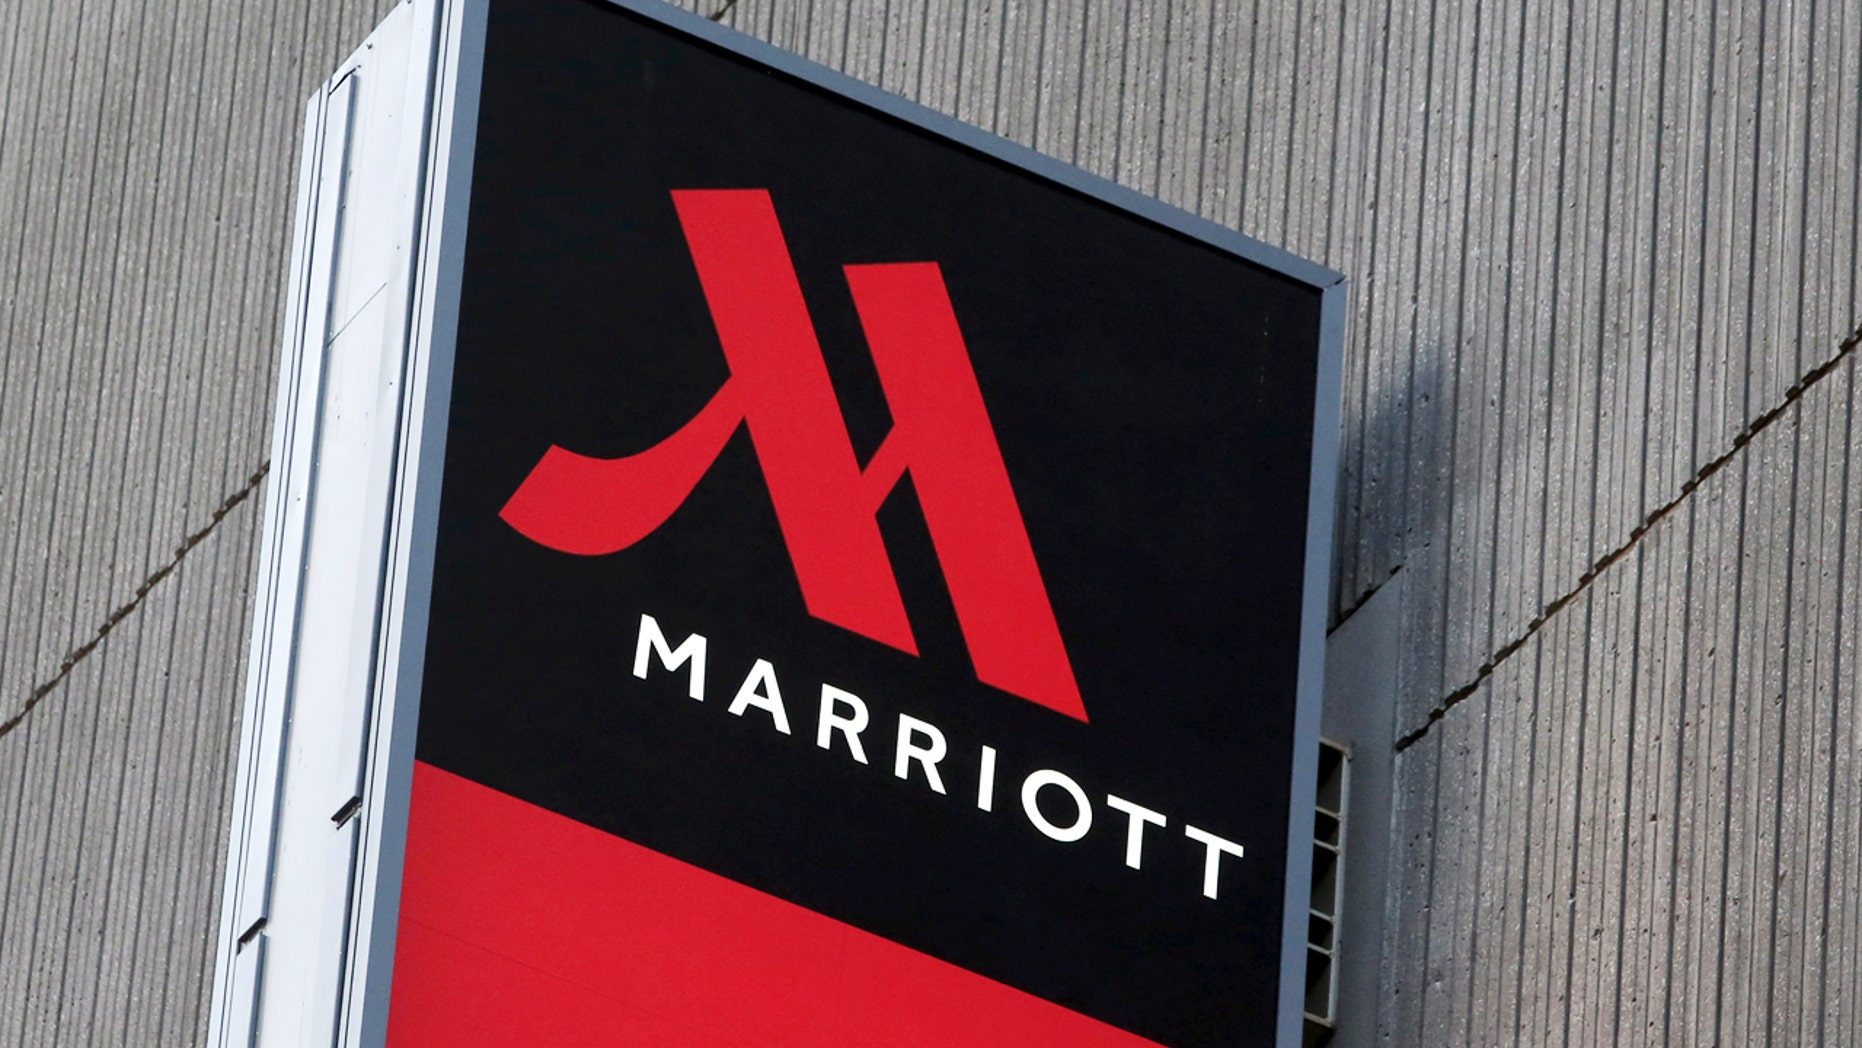 Marriott Hotel continues to warn people about fake phone